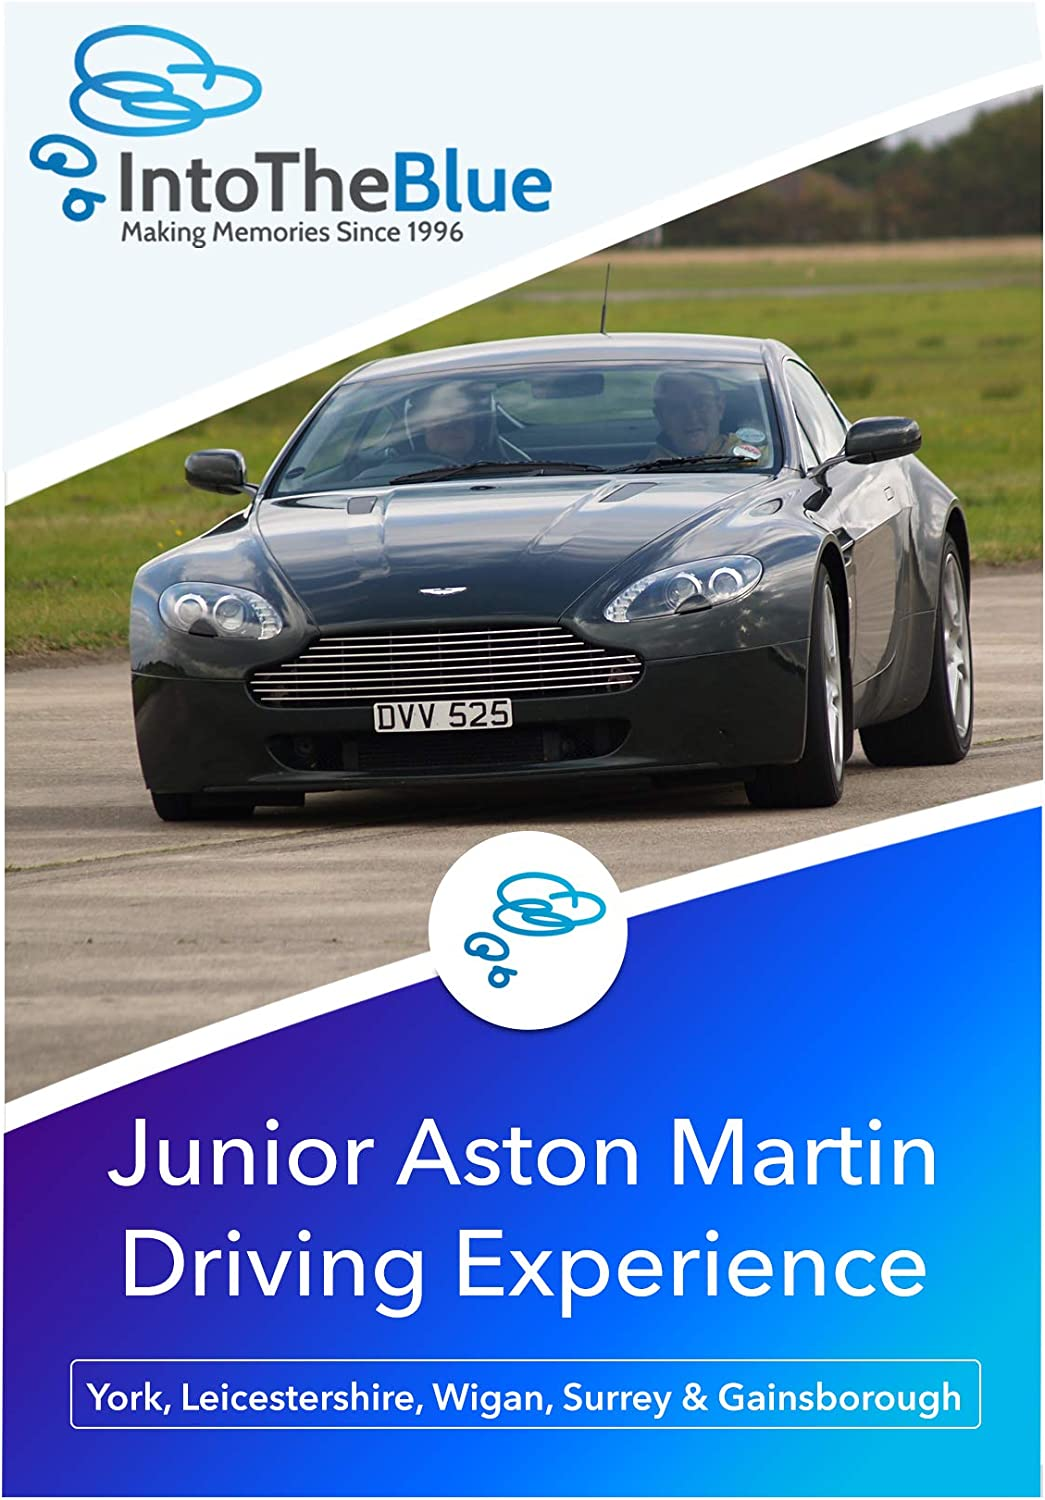 Into The Blue Junior Aston Martin Driving Experience Gift Voucher Valid At Nationwide Locations Under 17 Driving Lesson Experience Amazon Co Uk Sports Outdoors